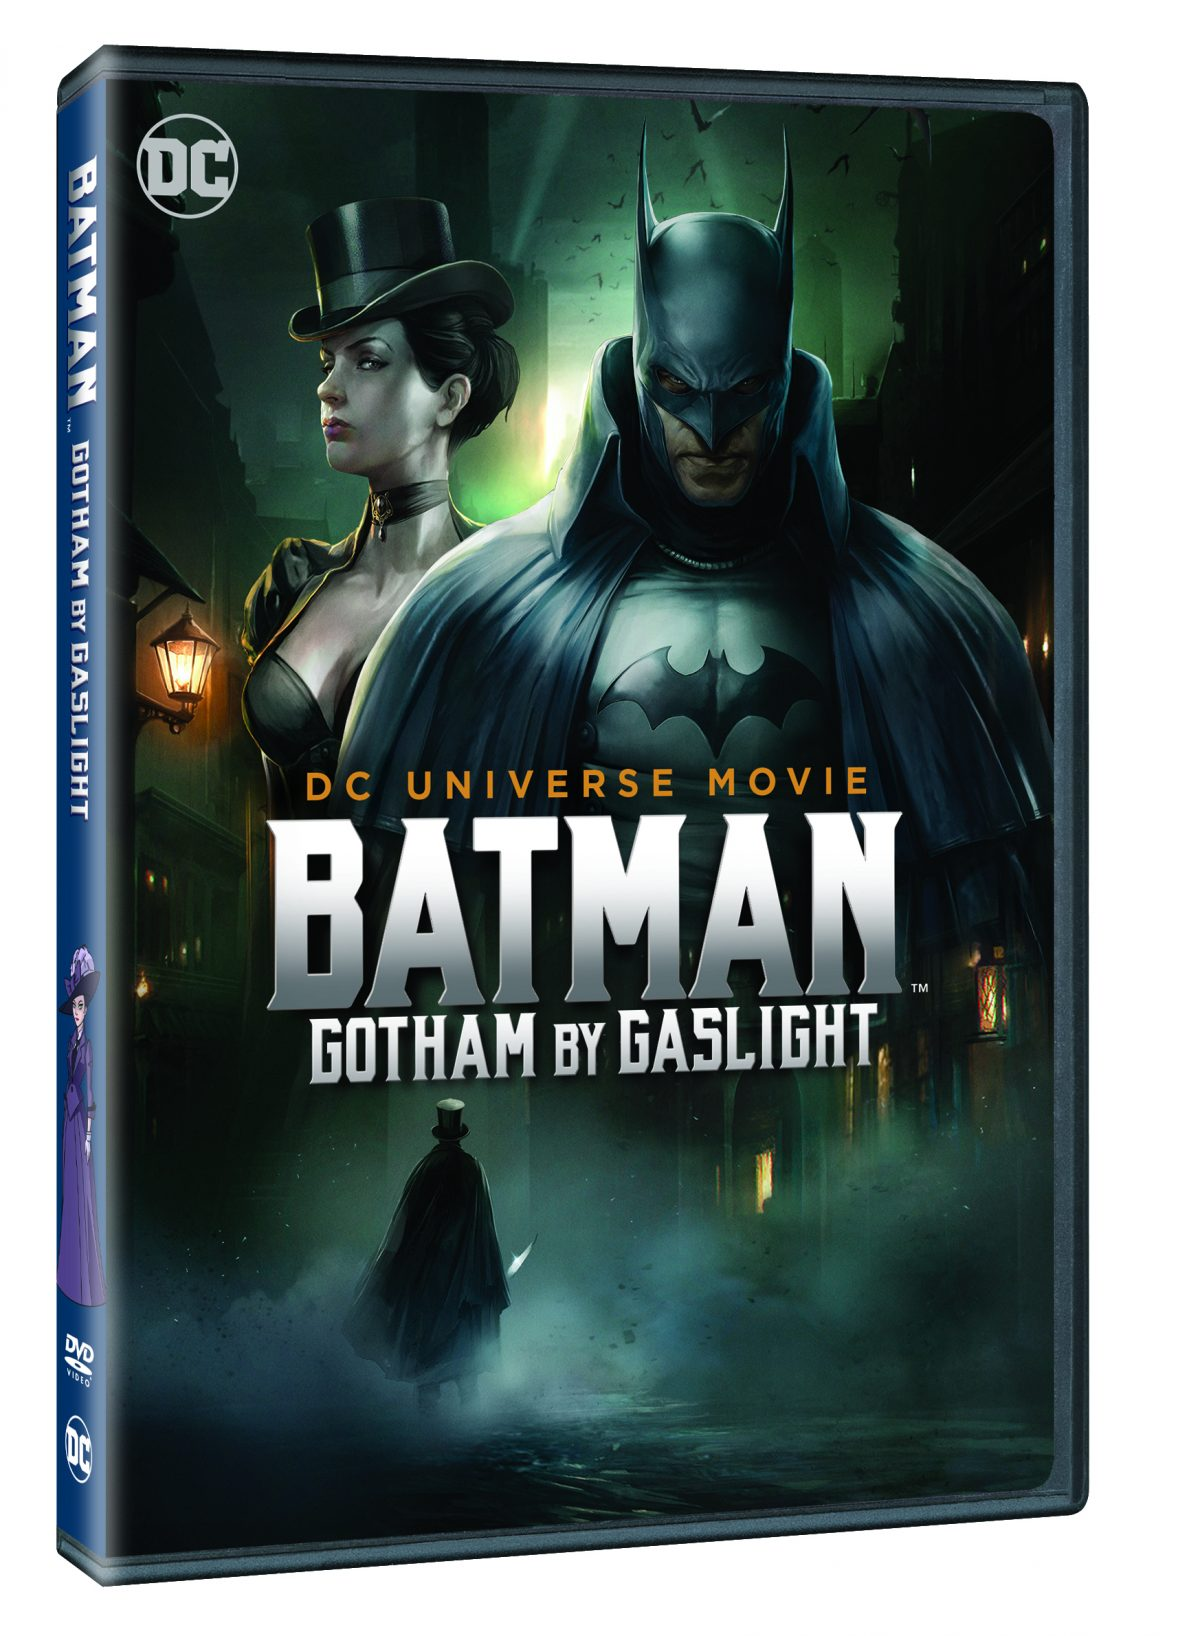 Back in 1989 the comic book, Tales of Batman: Gotham by Gaslight was released, we take a look at the animated movie inspired by the comic book.